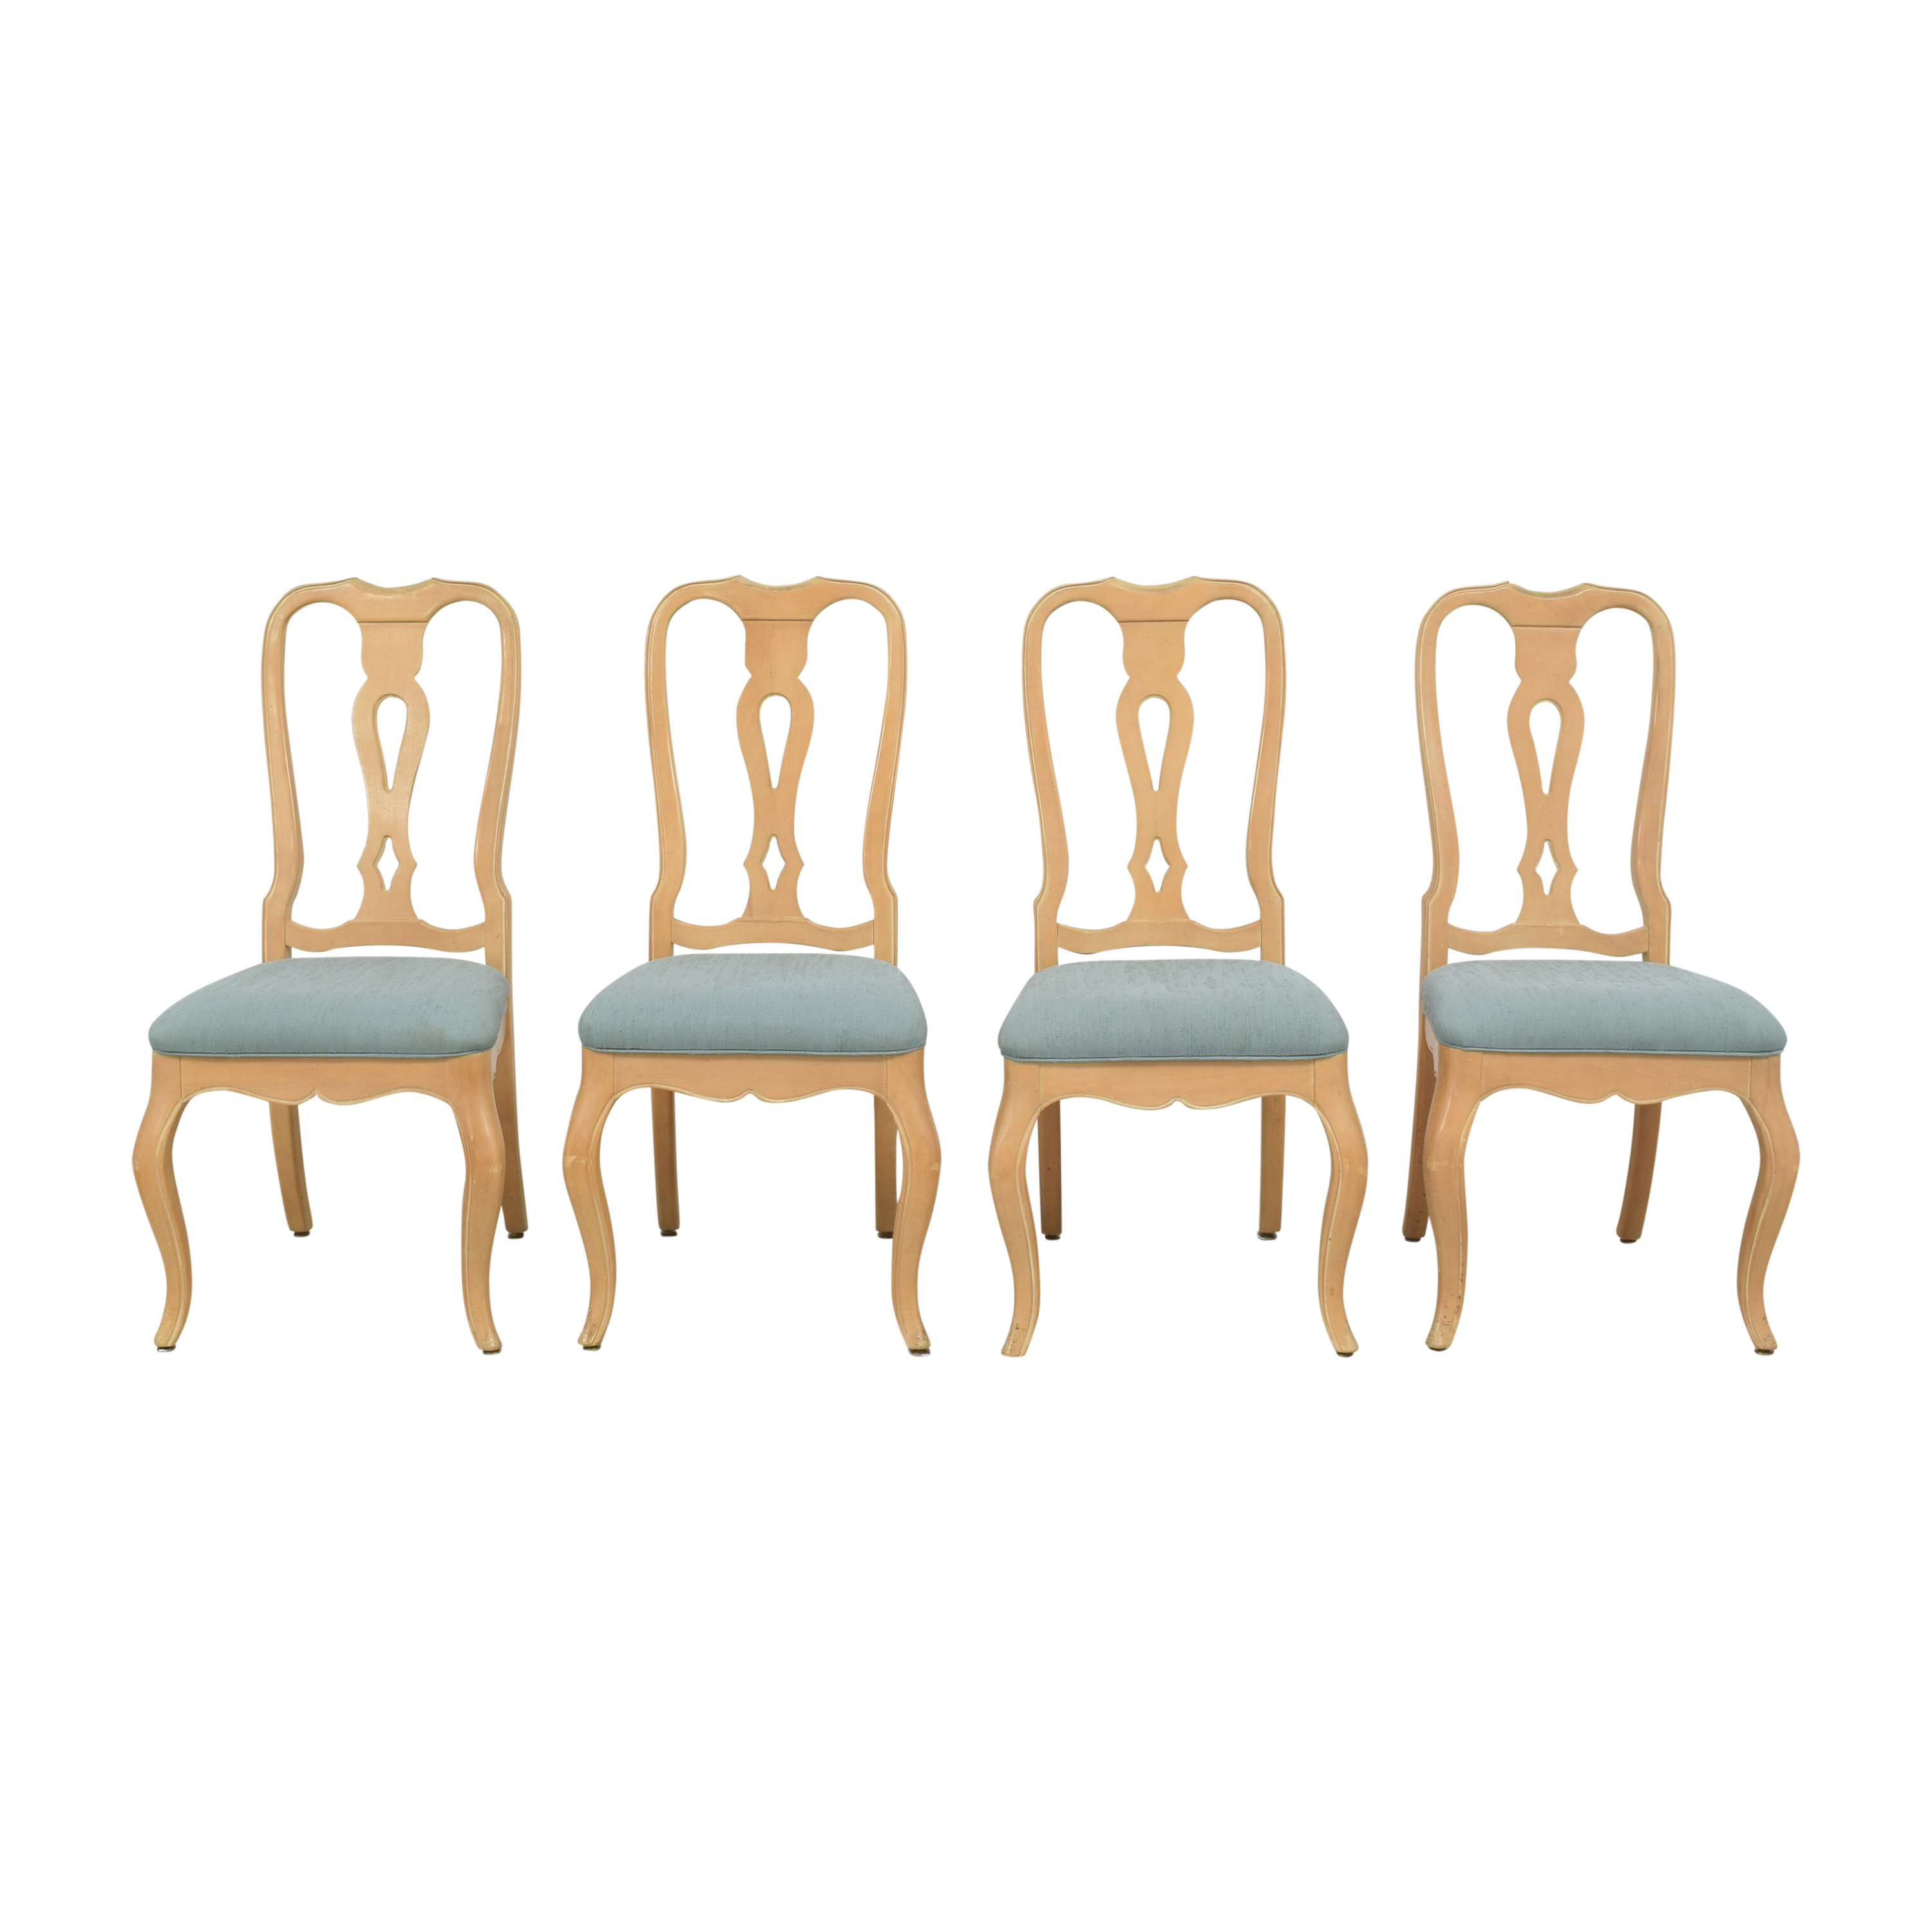 shop Ethan Allen Upholstered Dining Chairs Ethan Allen Chairs